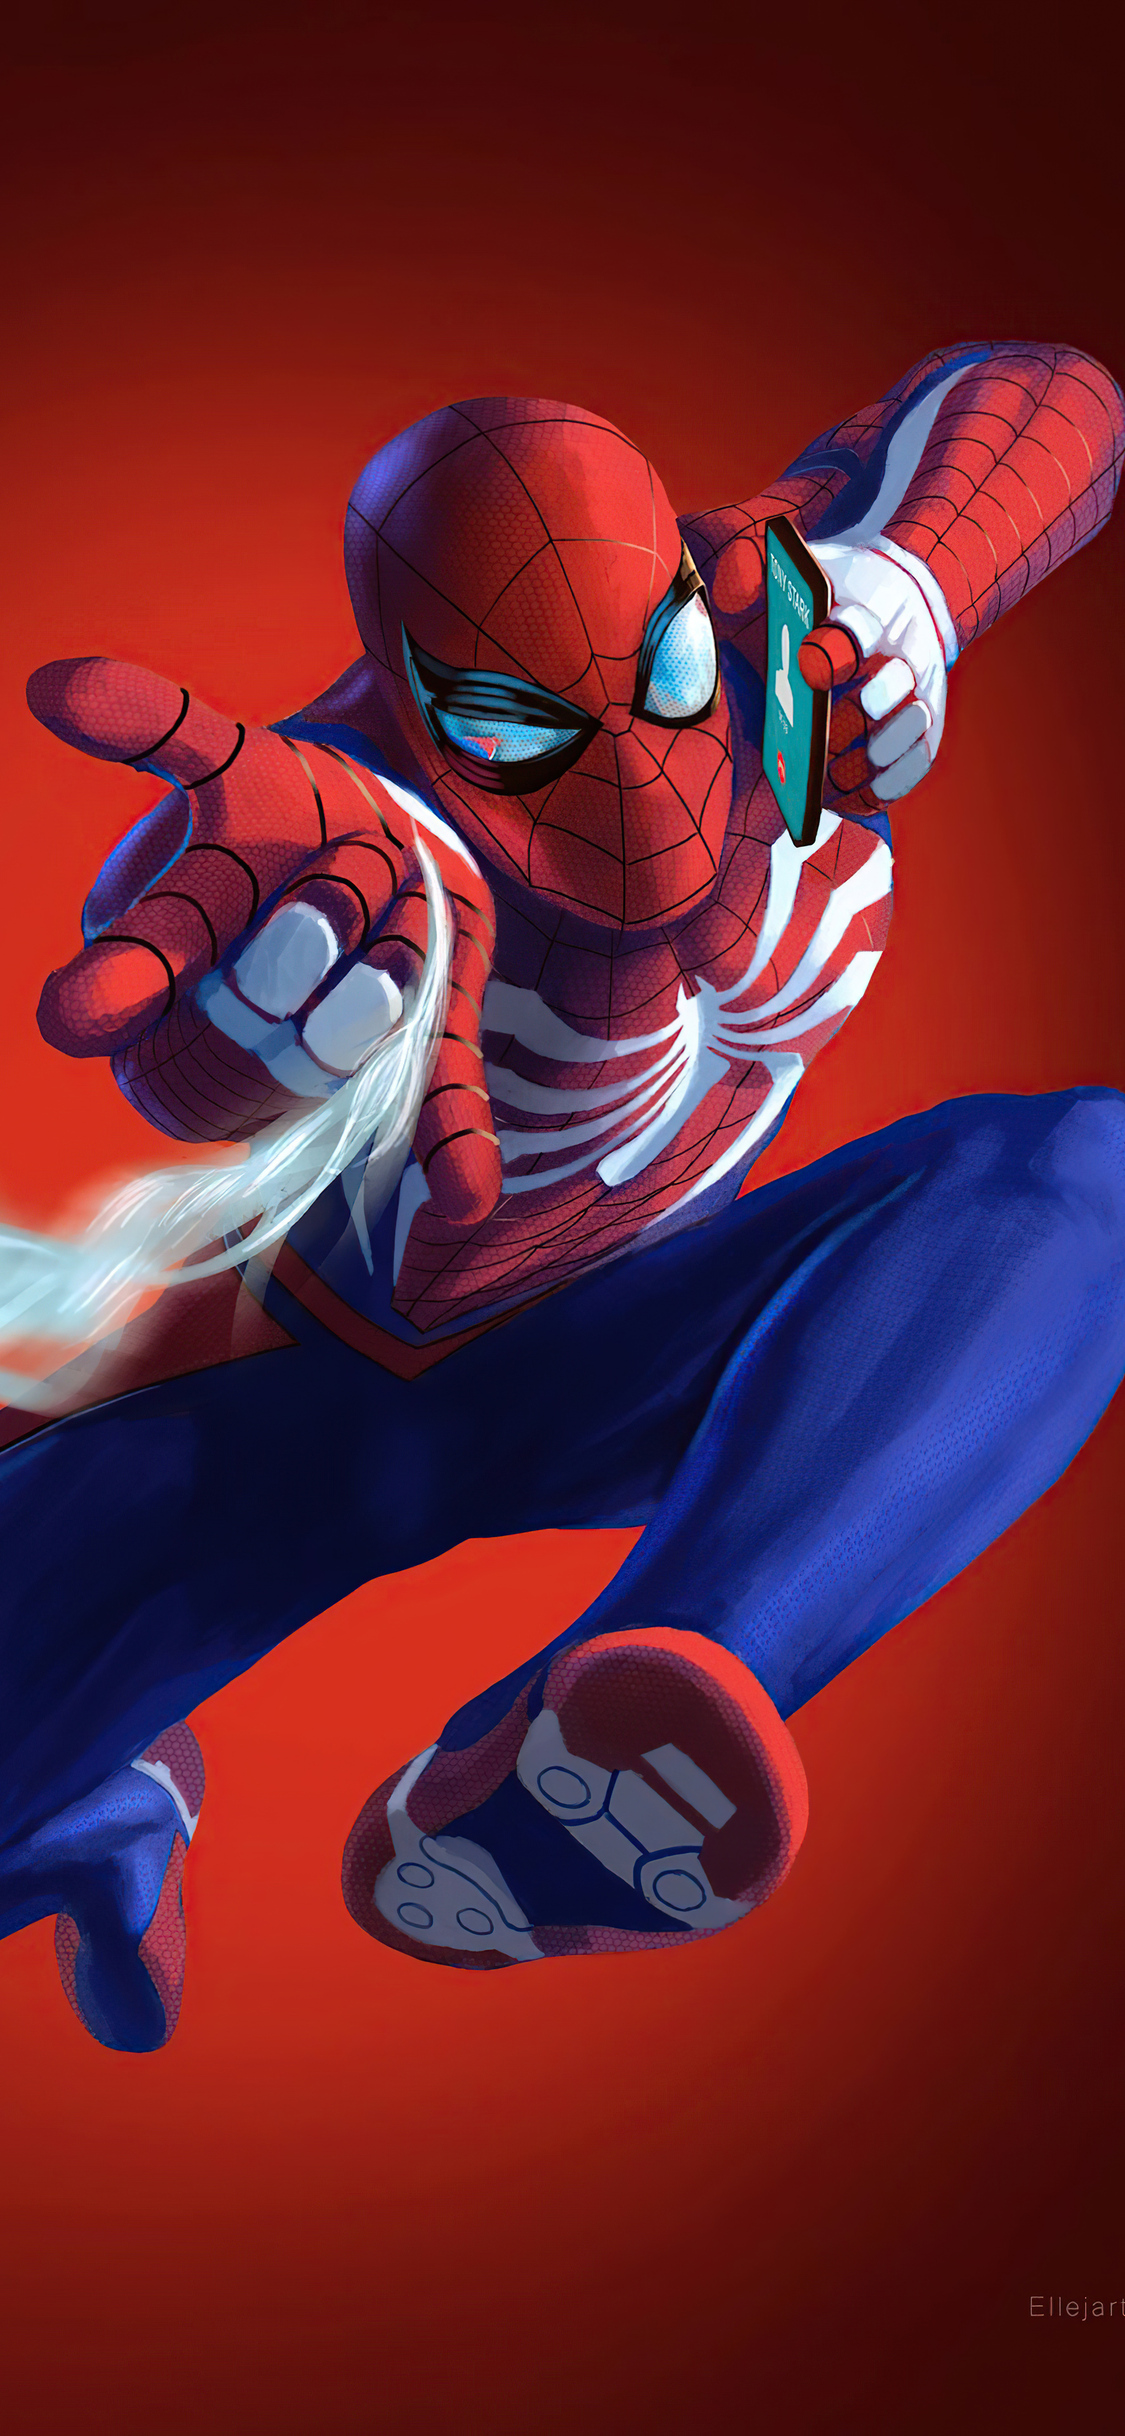 1125x2436 Spiderman On Phone 4k Iphone Xs Iphone 10 Iphone X Hd 4k Wallpapers Images Backgrounds Photos And Pictures